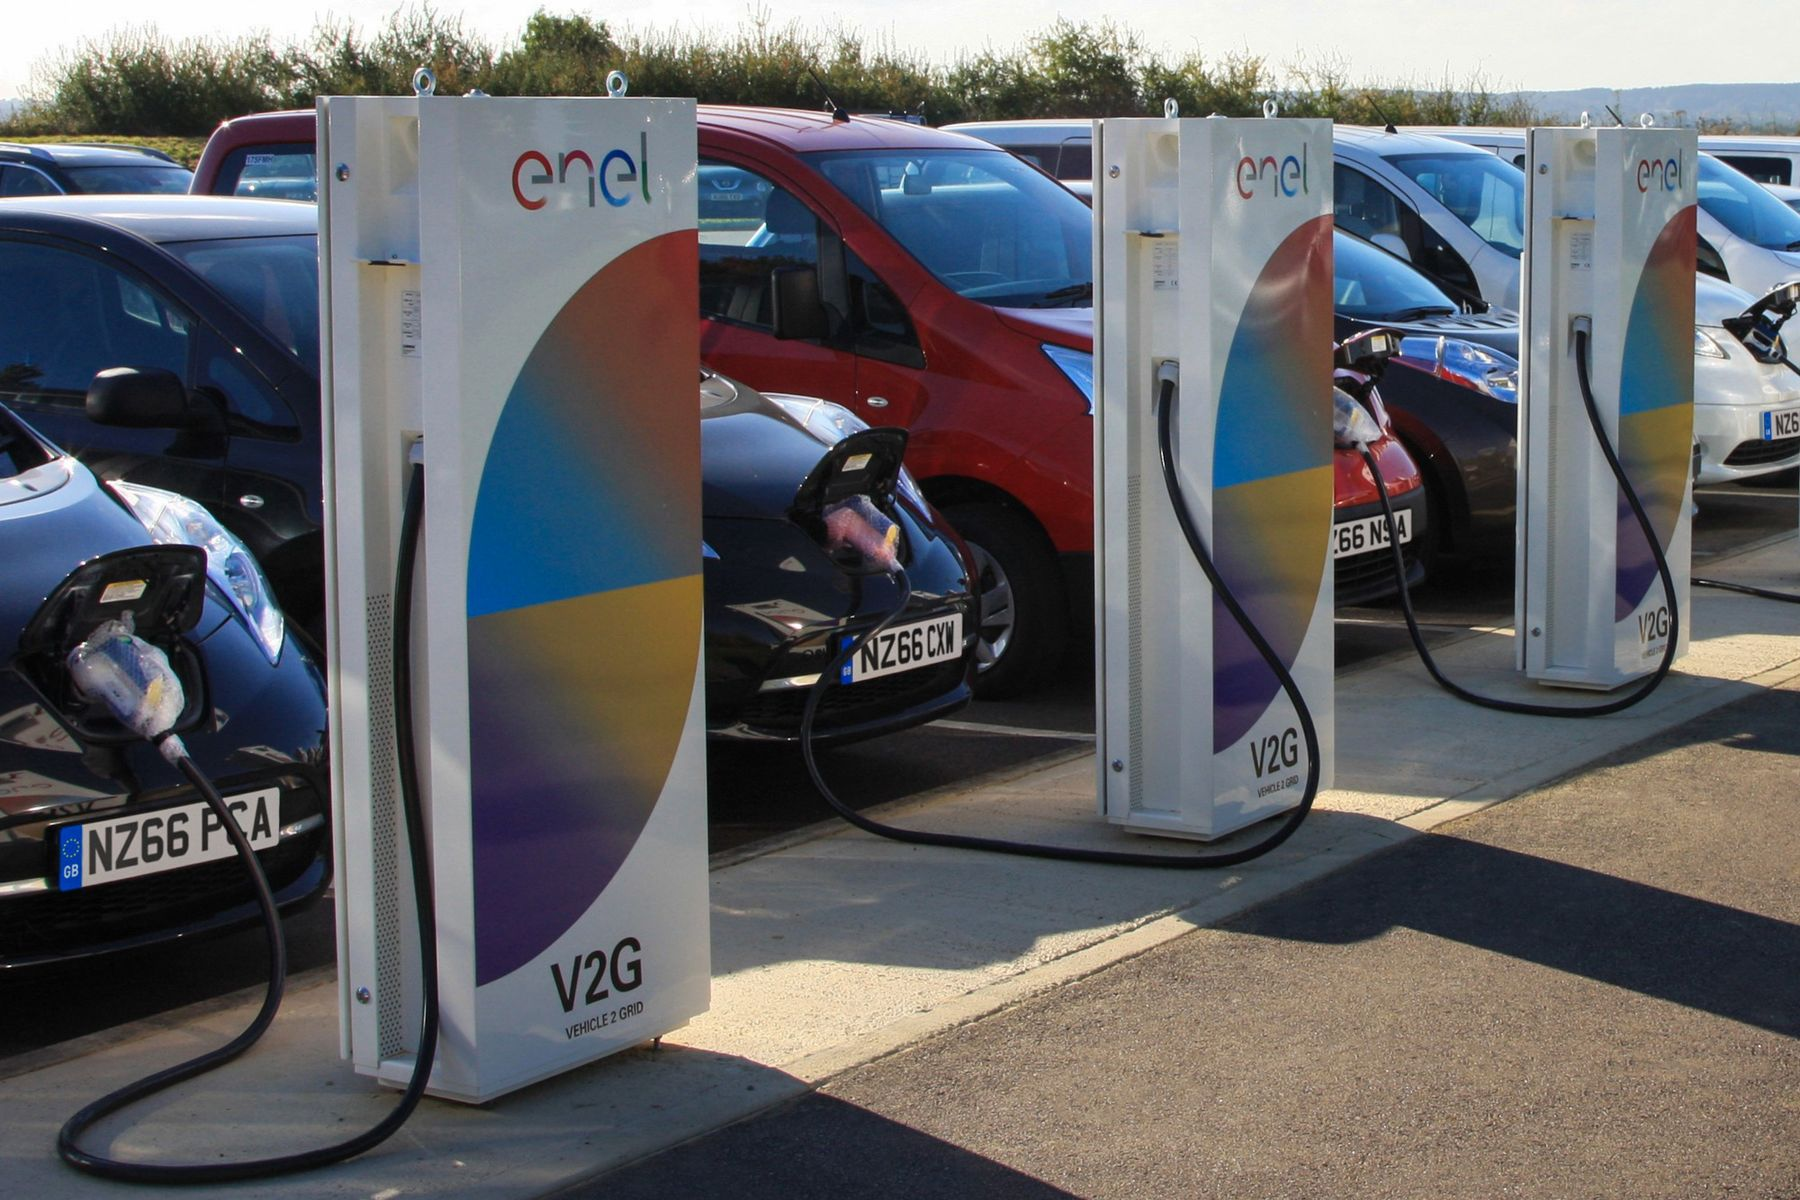 Parked Electric Cars Earn Feeding Power Grids In Europe